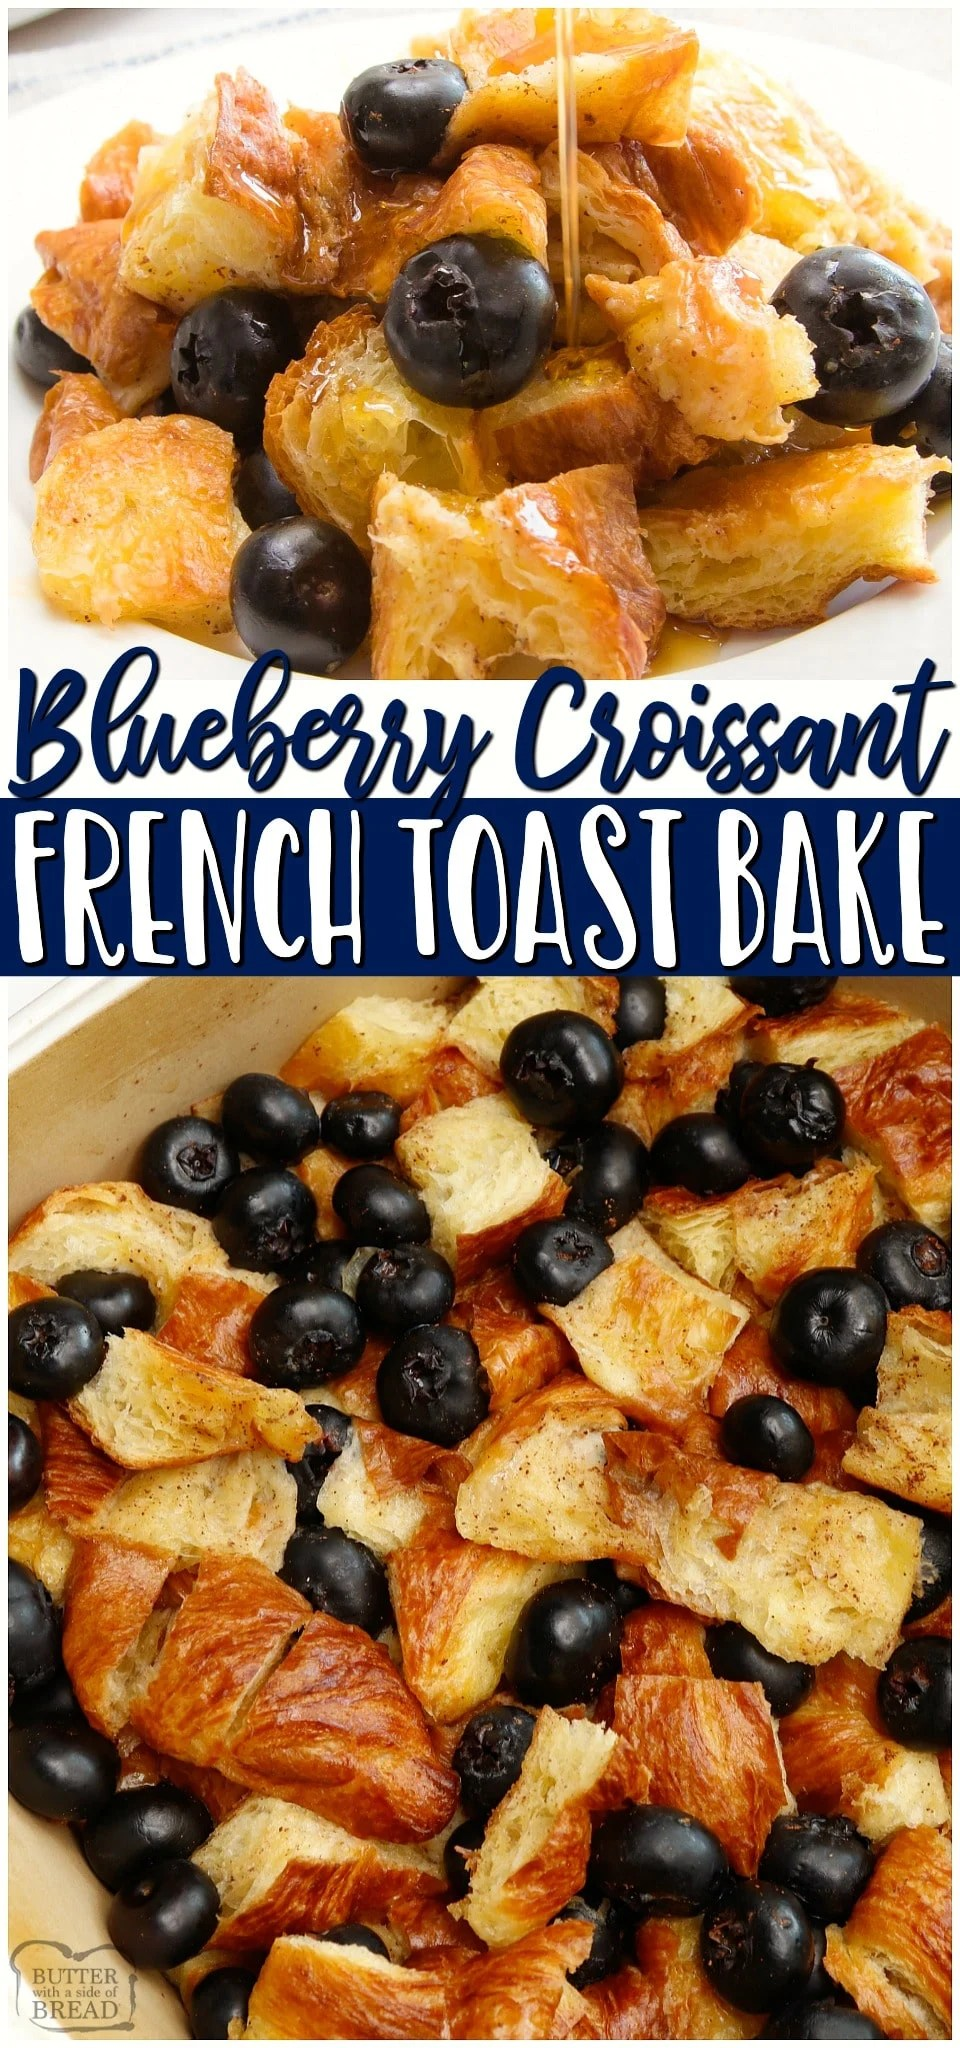 Blueberry Croissant French Toast Bake is a buttery, fluffy, and flavorful breakfast recipe. With 5 ingredients & a few simple steps, you can have an Easy Croissant French Toast Casserole in no time! #breakfast #frenchtoast #bake #blueberry #croissant #easyrecipe from BUTTER WITH A SIDE OF BREAD